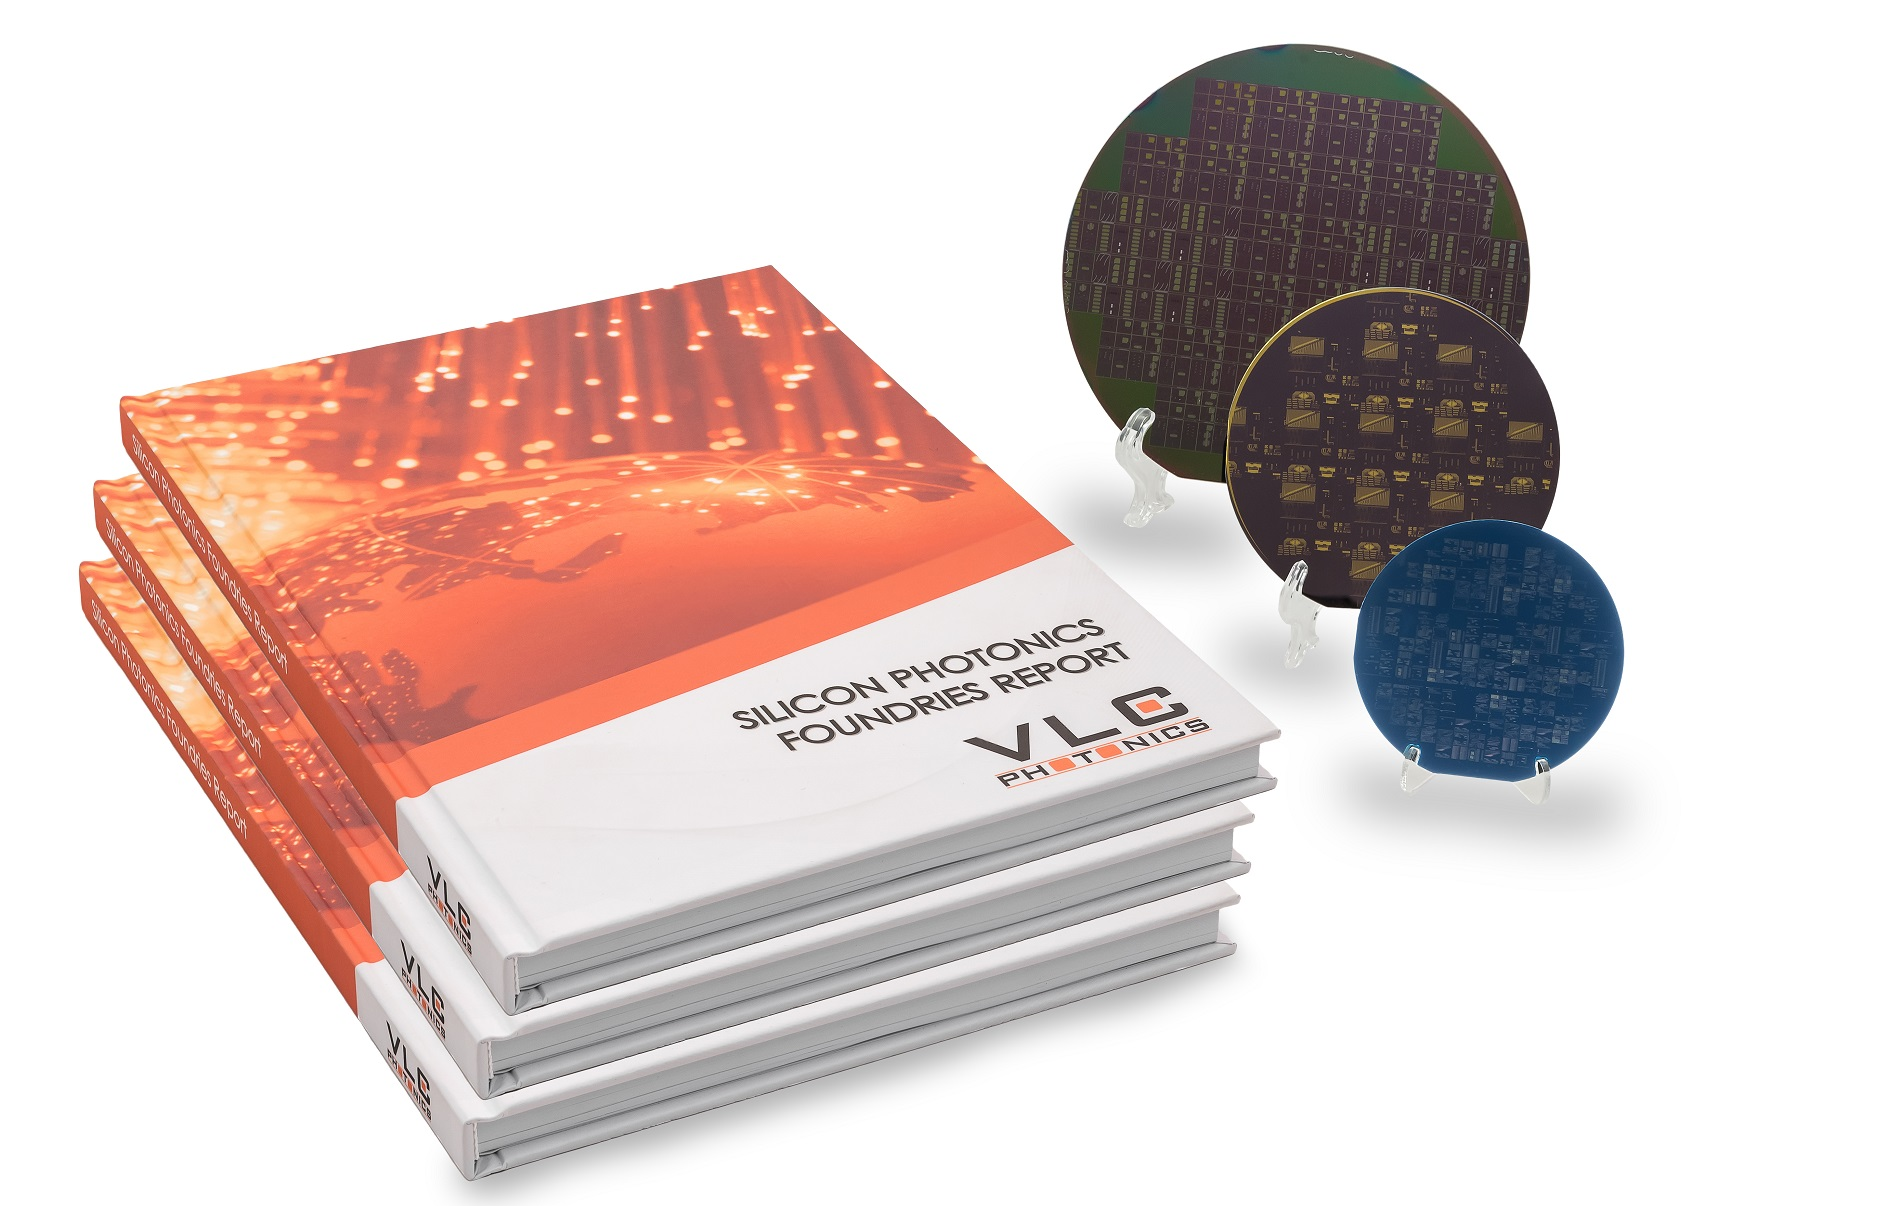 VLC Photonics launches a comprehensive report on silicon photonic